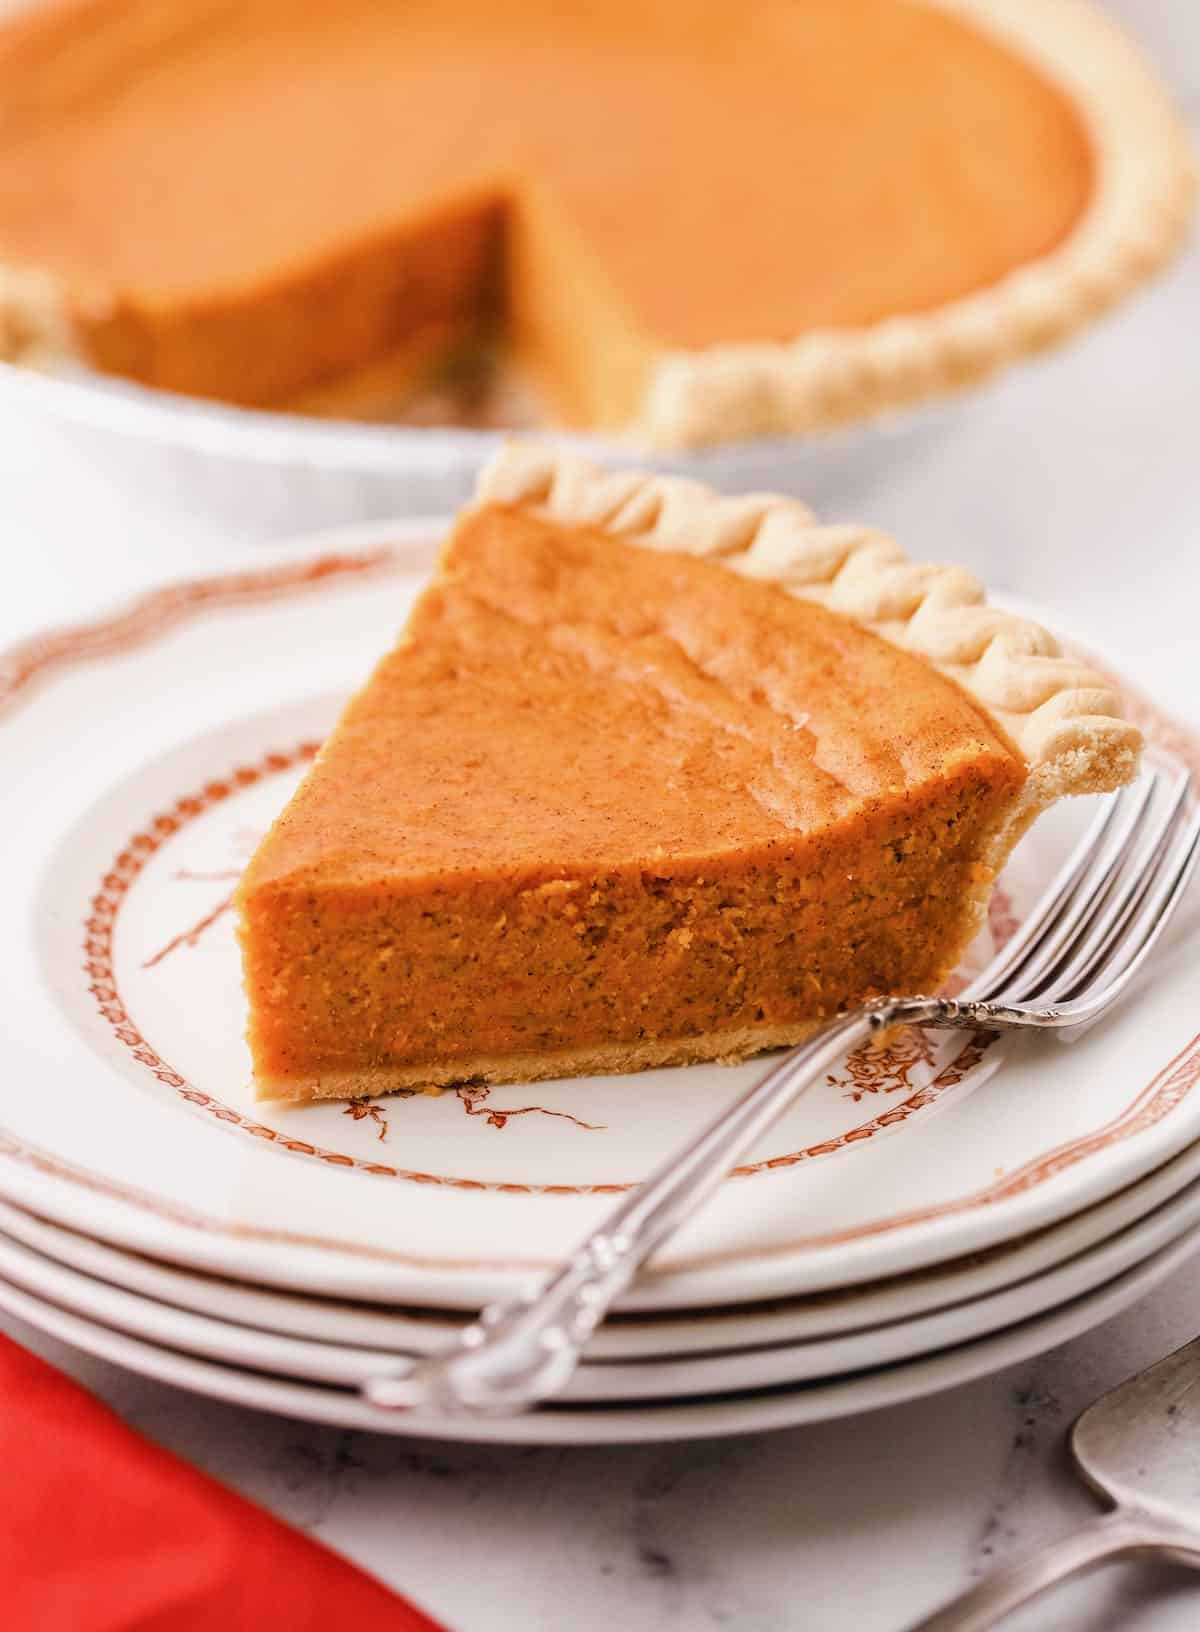 A slice of sweet potato pie on a plate with a fork.